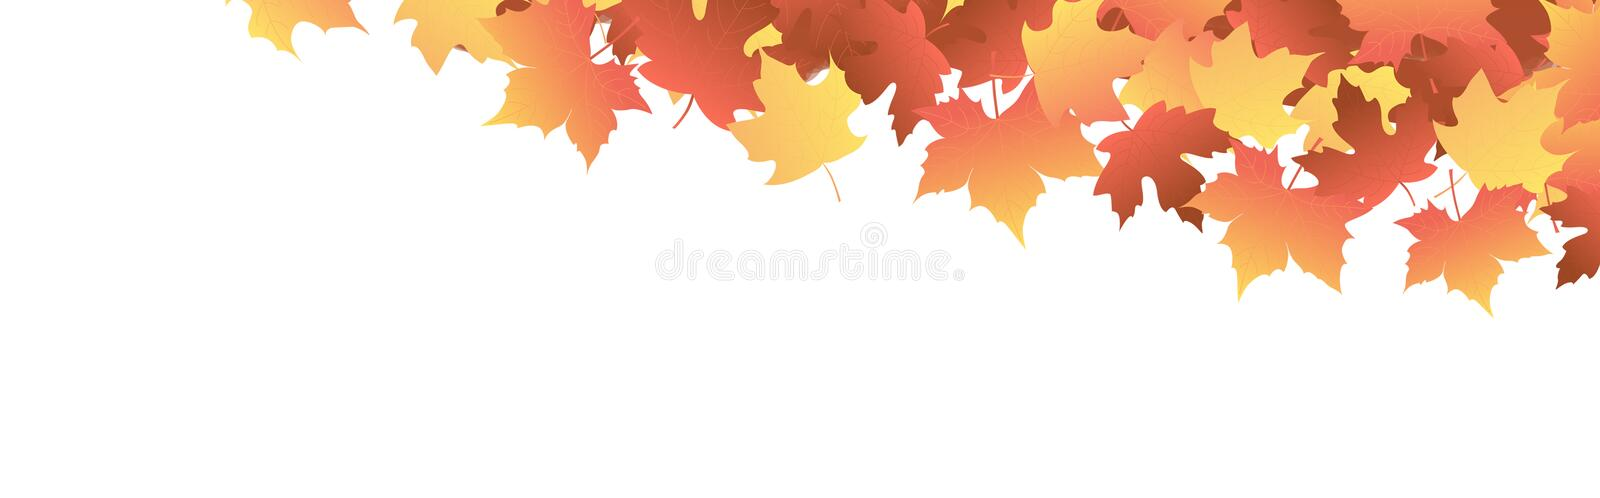 Autumn Leaves [maple] header royalty free illustration